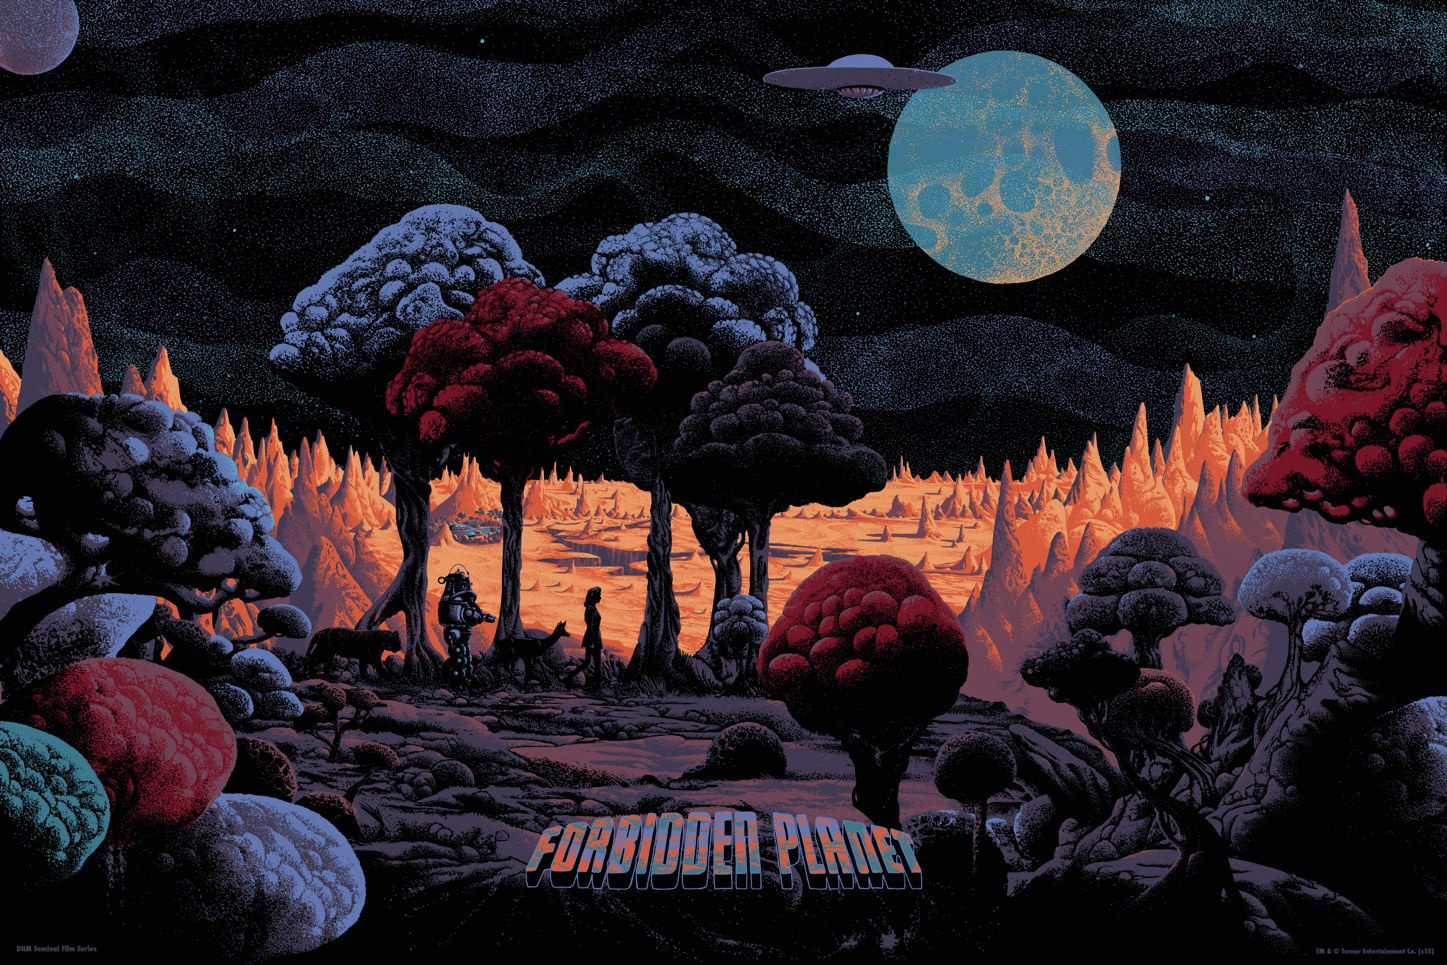 Forbidden Planet Print By Kilian Eng